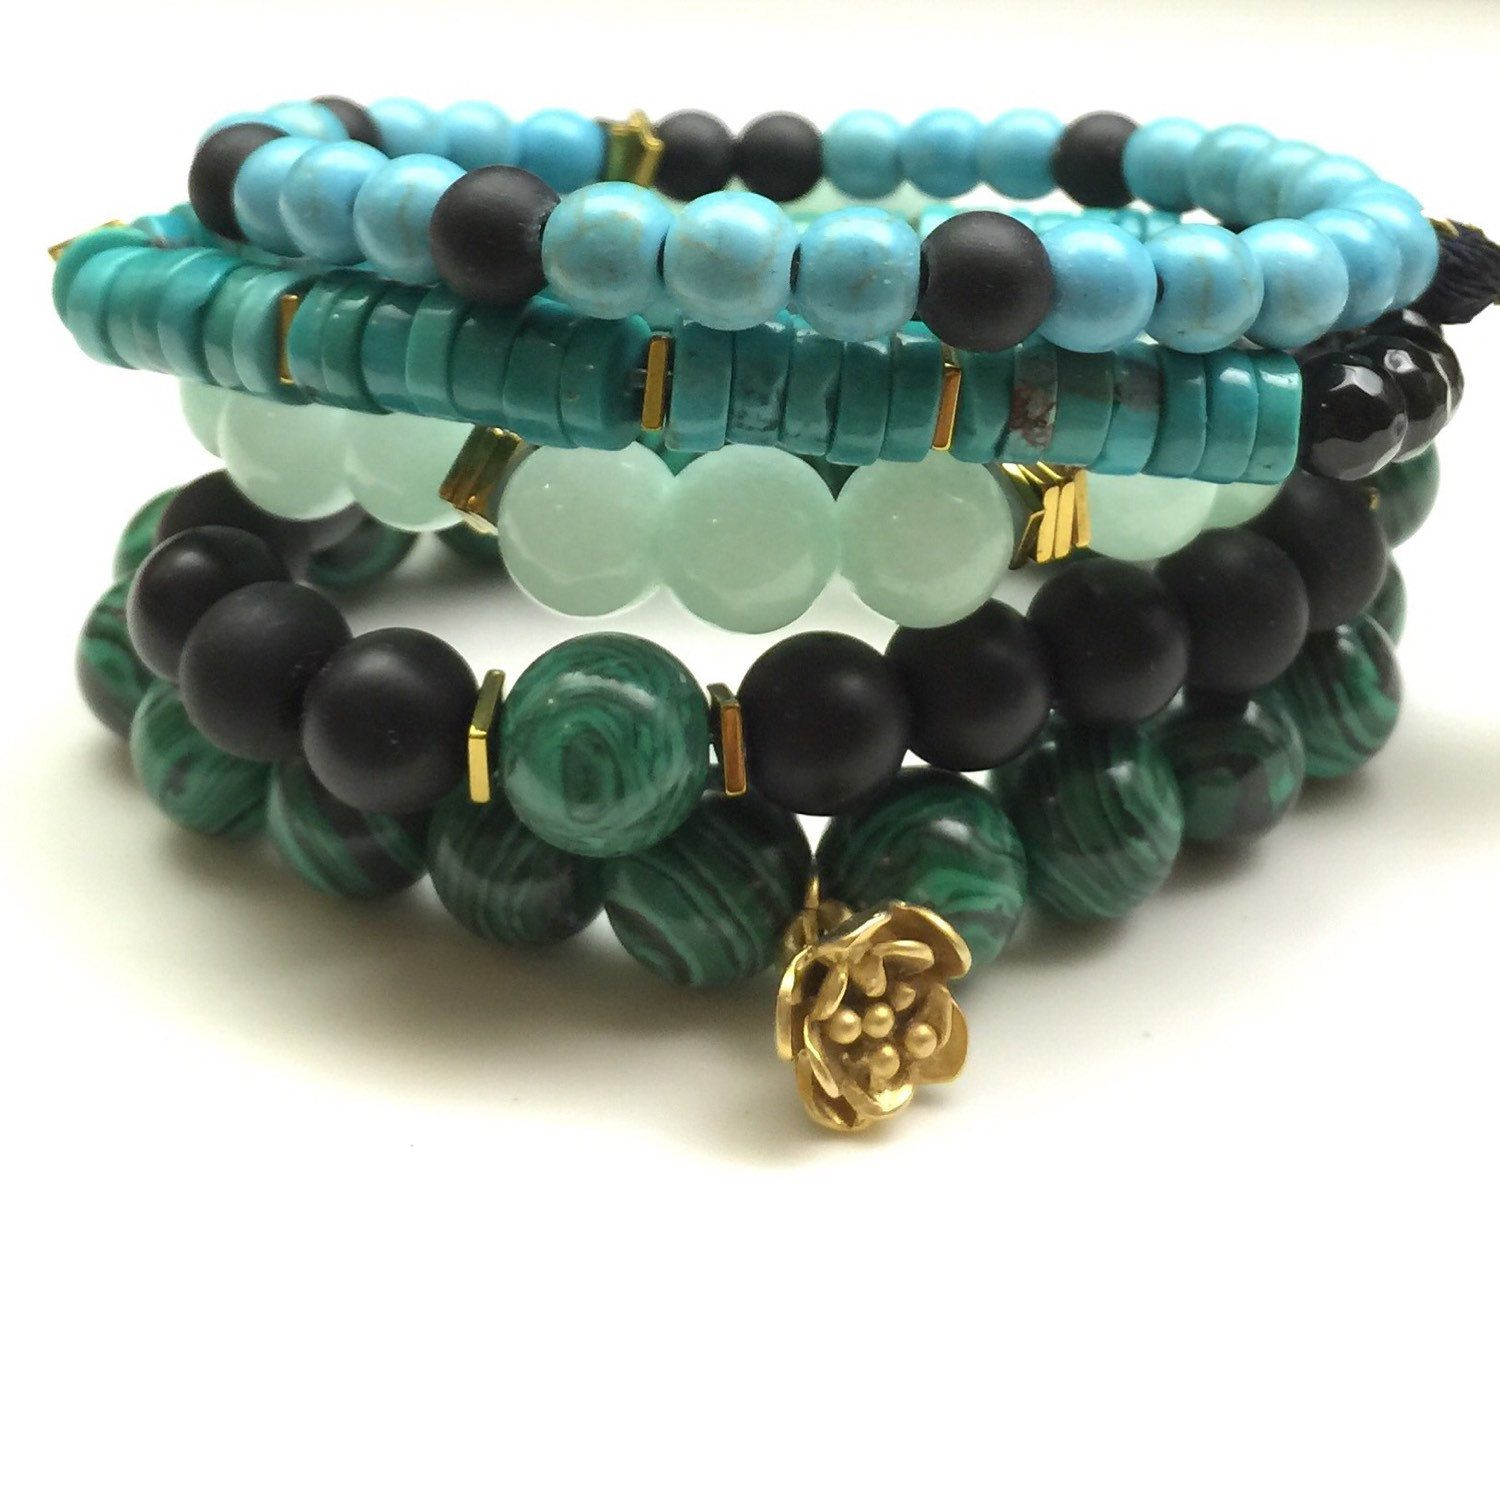 Multi Strand Beaded Stacking Bracelet featuring Malachite, Turquoise, Black Onyx, and Gold Detailing. by EtcHawaii on Etsy